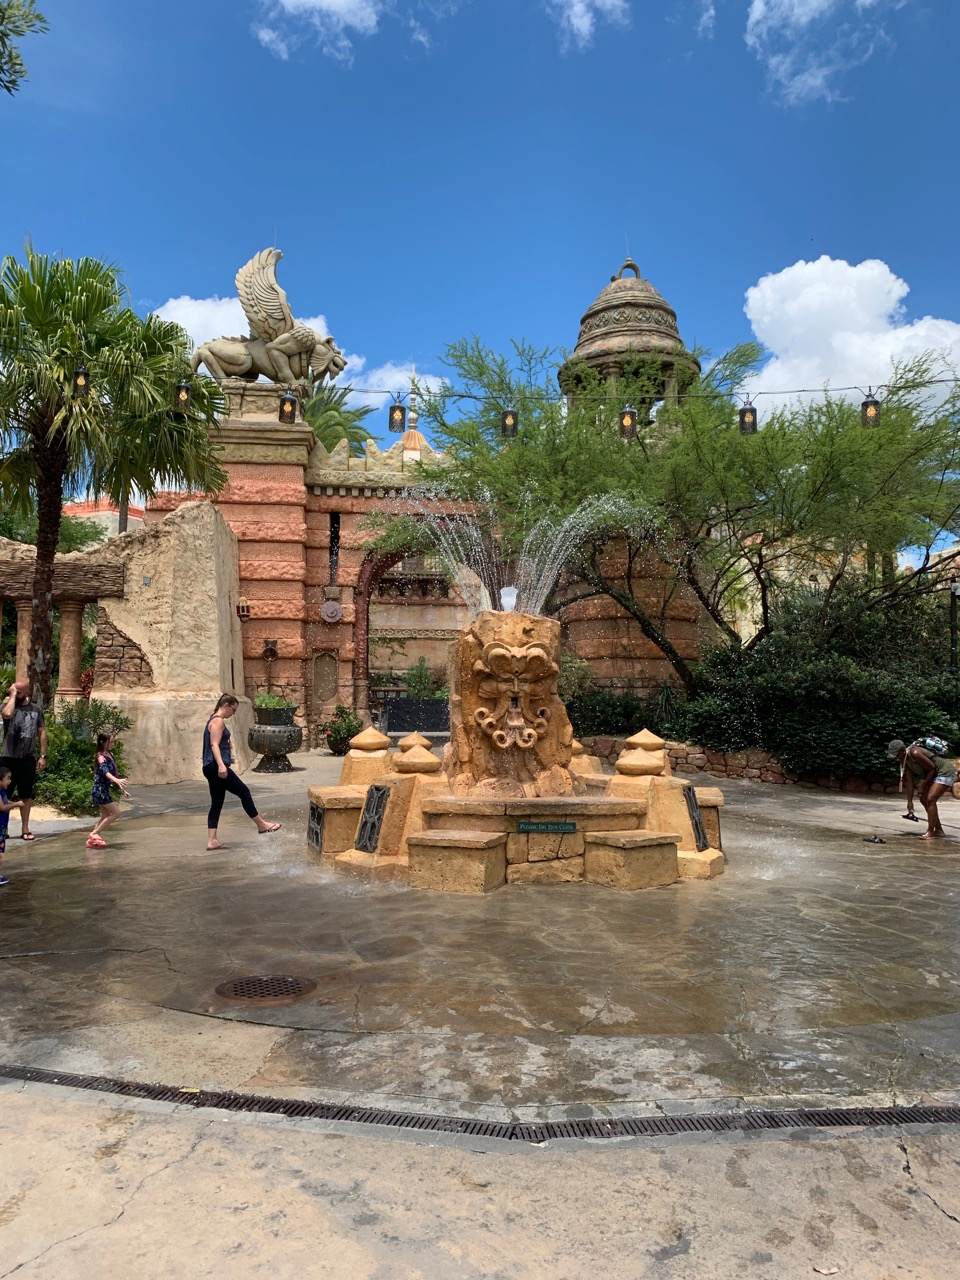 universal orlando summer 2019 trip report part 5 fountain.jpeg